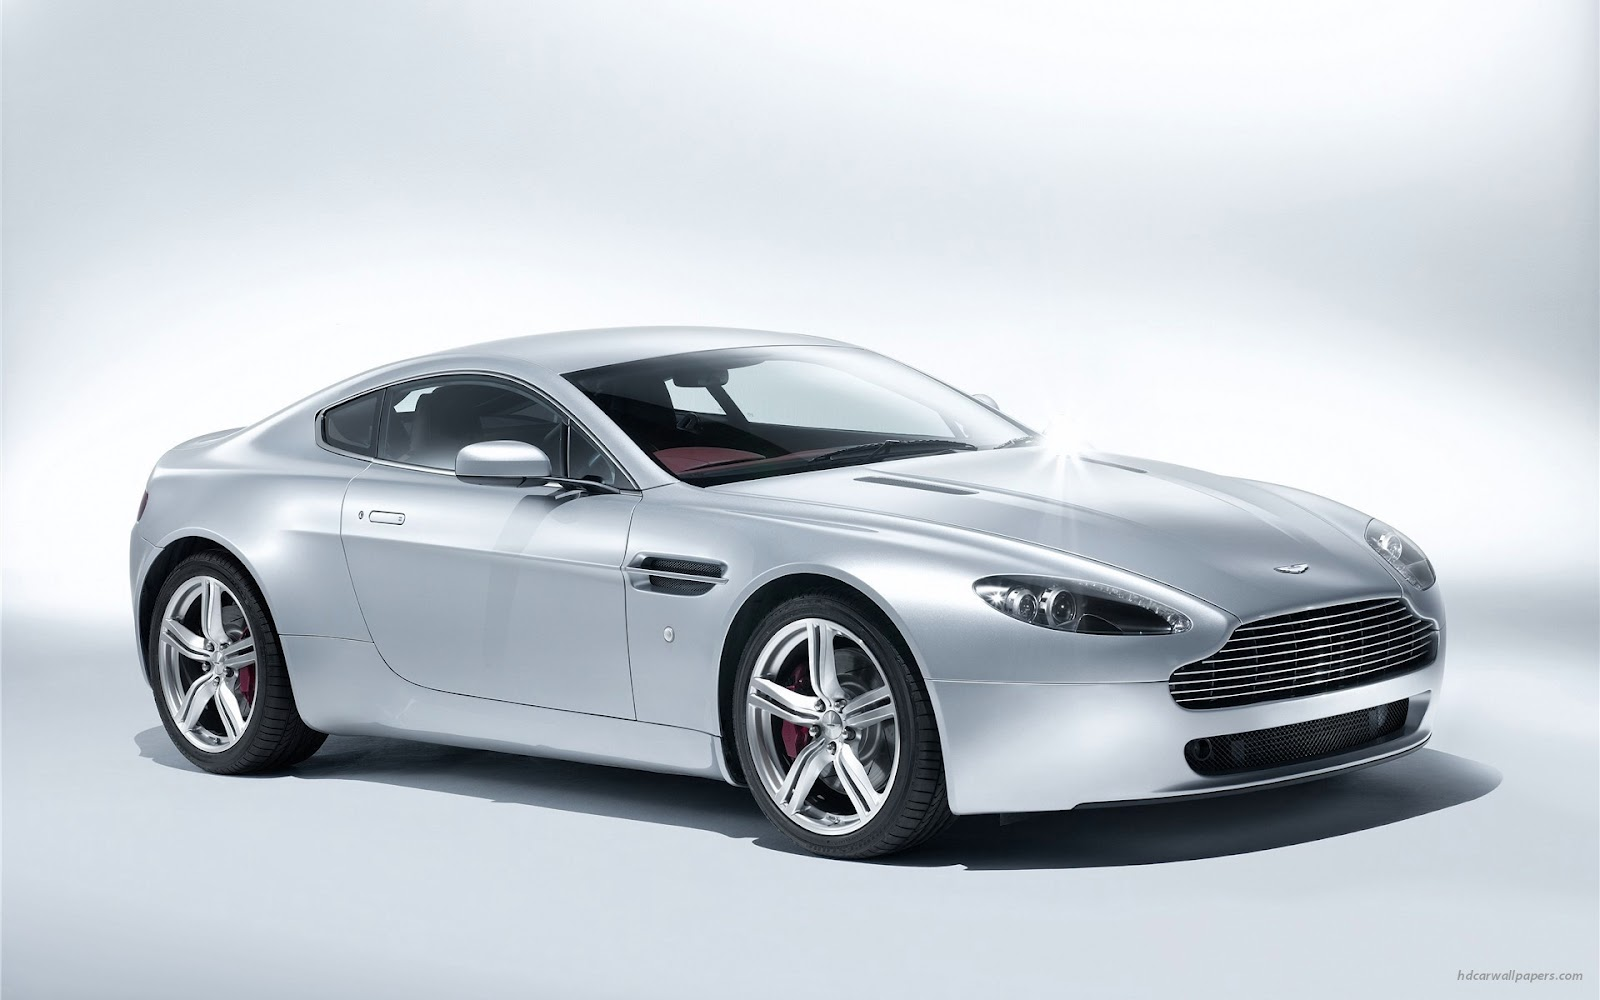 aston martin v8 vantage coupe 2009 cars wallpapers. Black Bedroom Furniture Sets. Home Design Ideas